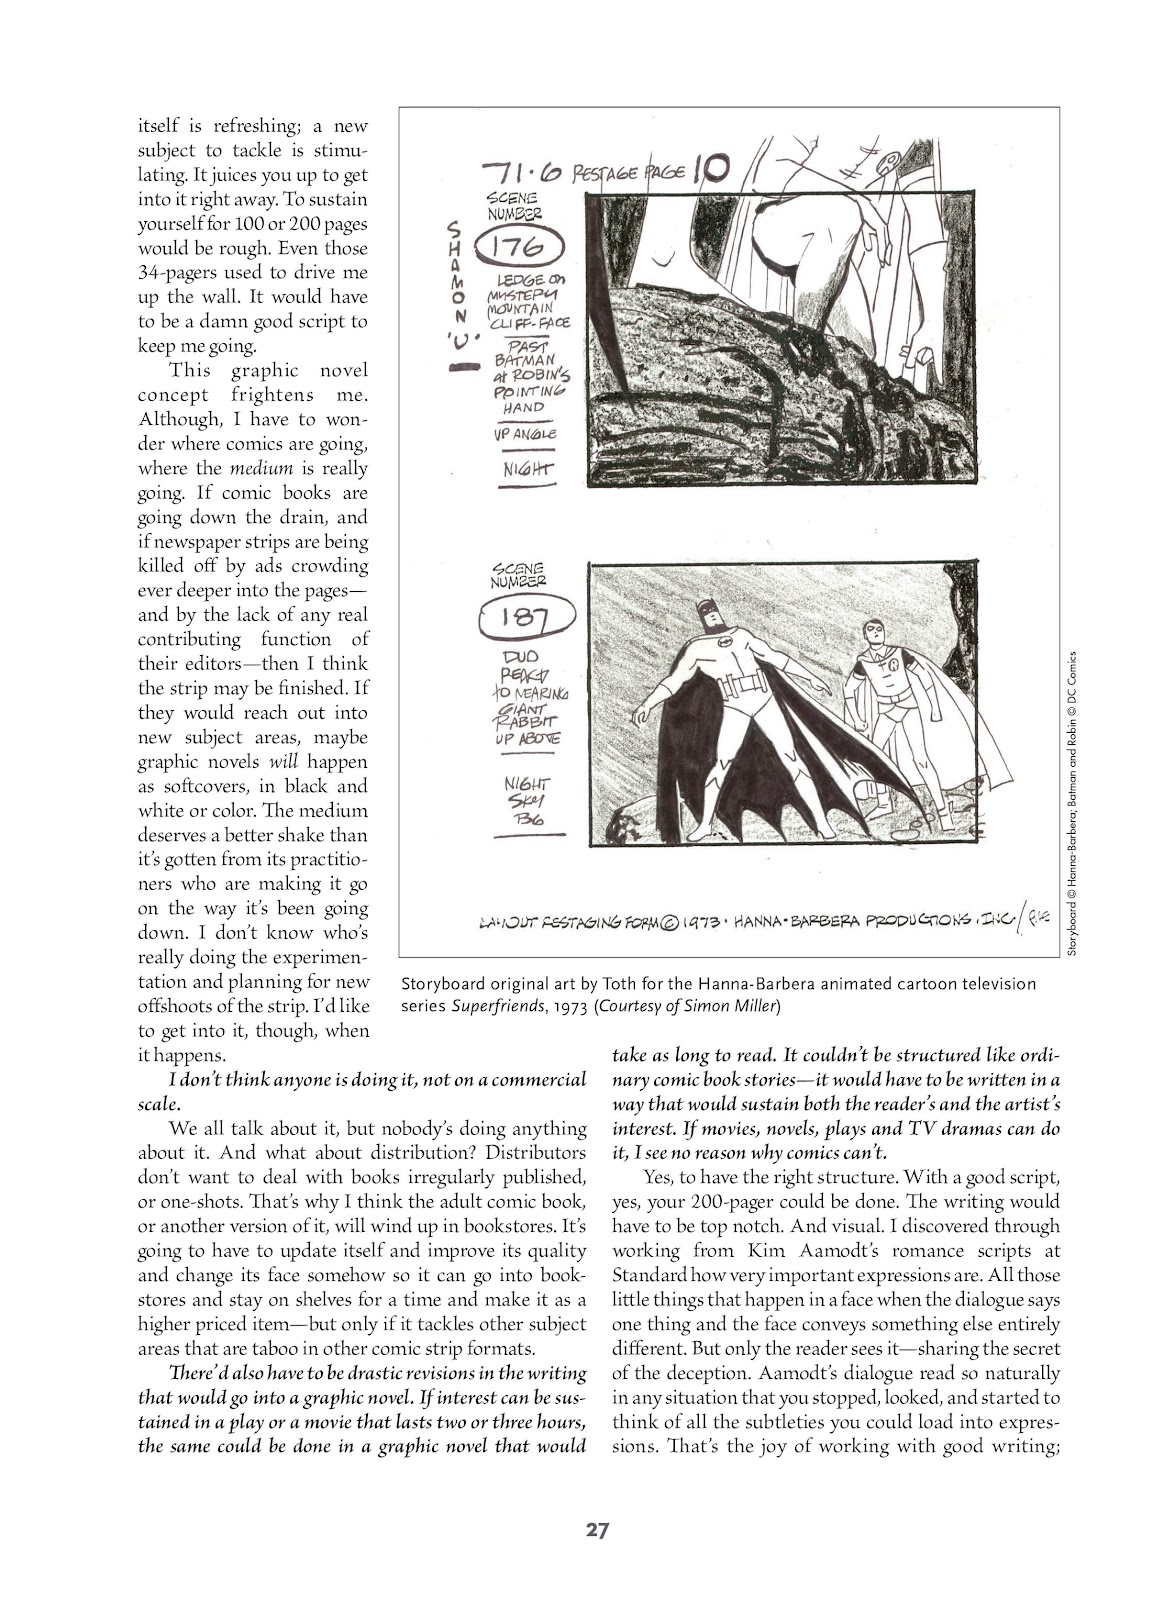 Read online Setting the Standard: Comics by Alex Toth 1952-1954 comic -  Issue # TPB (Part 1) - 26